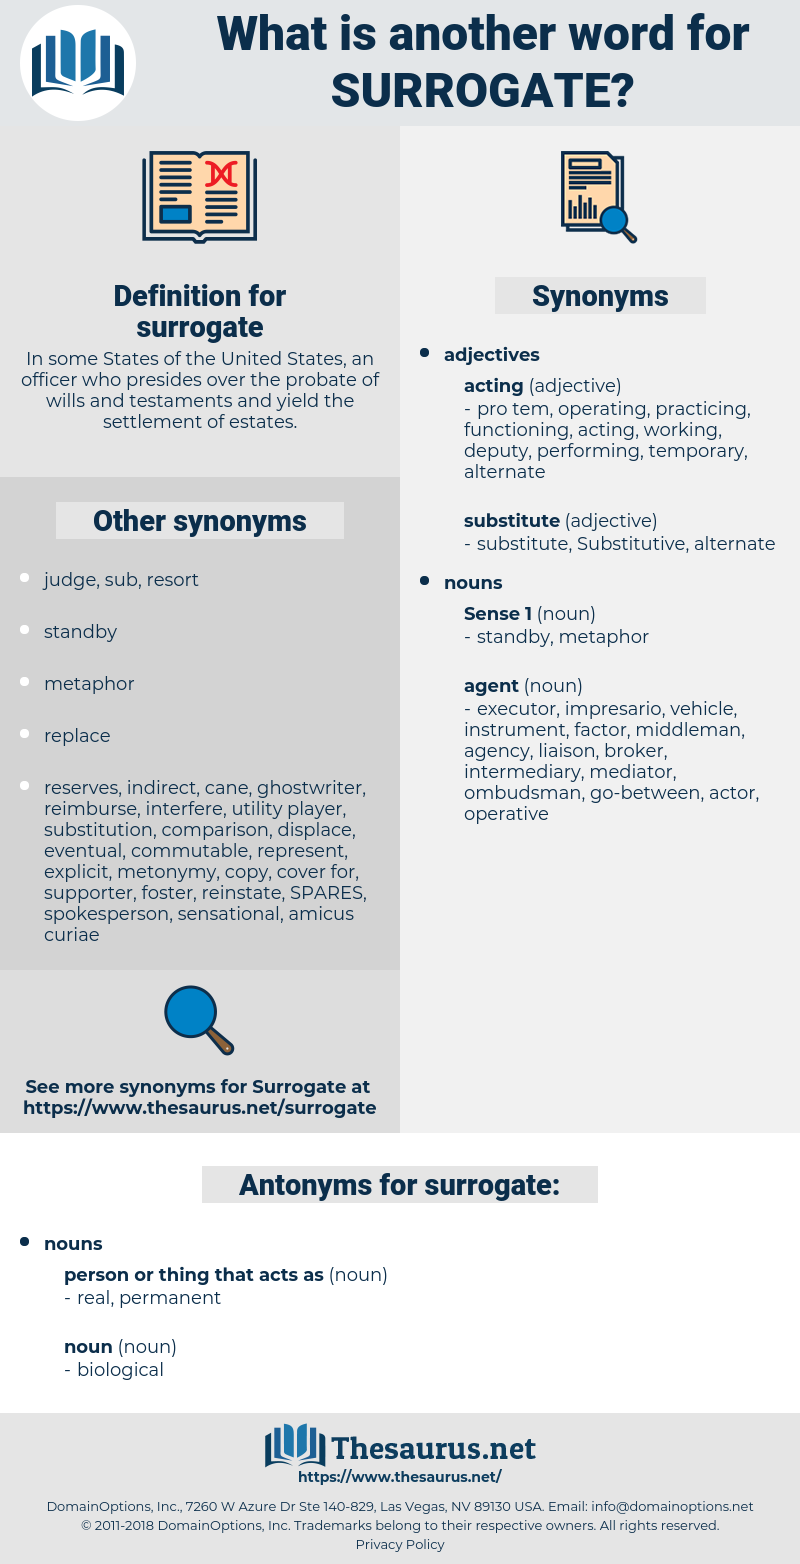 synonyms for surrogate - thesaurus